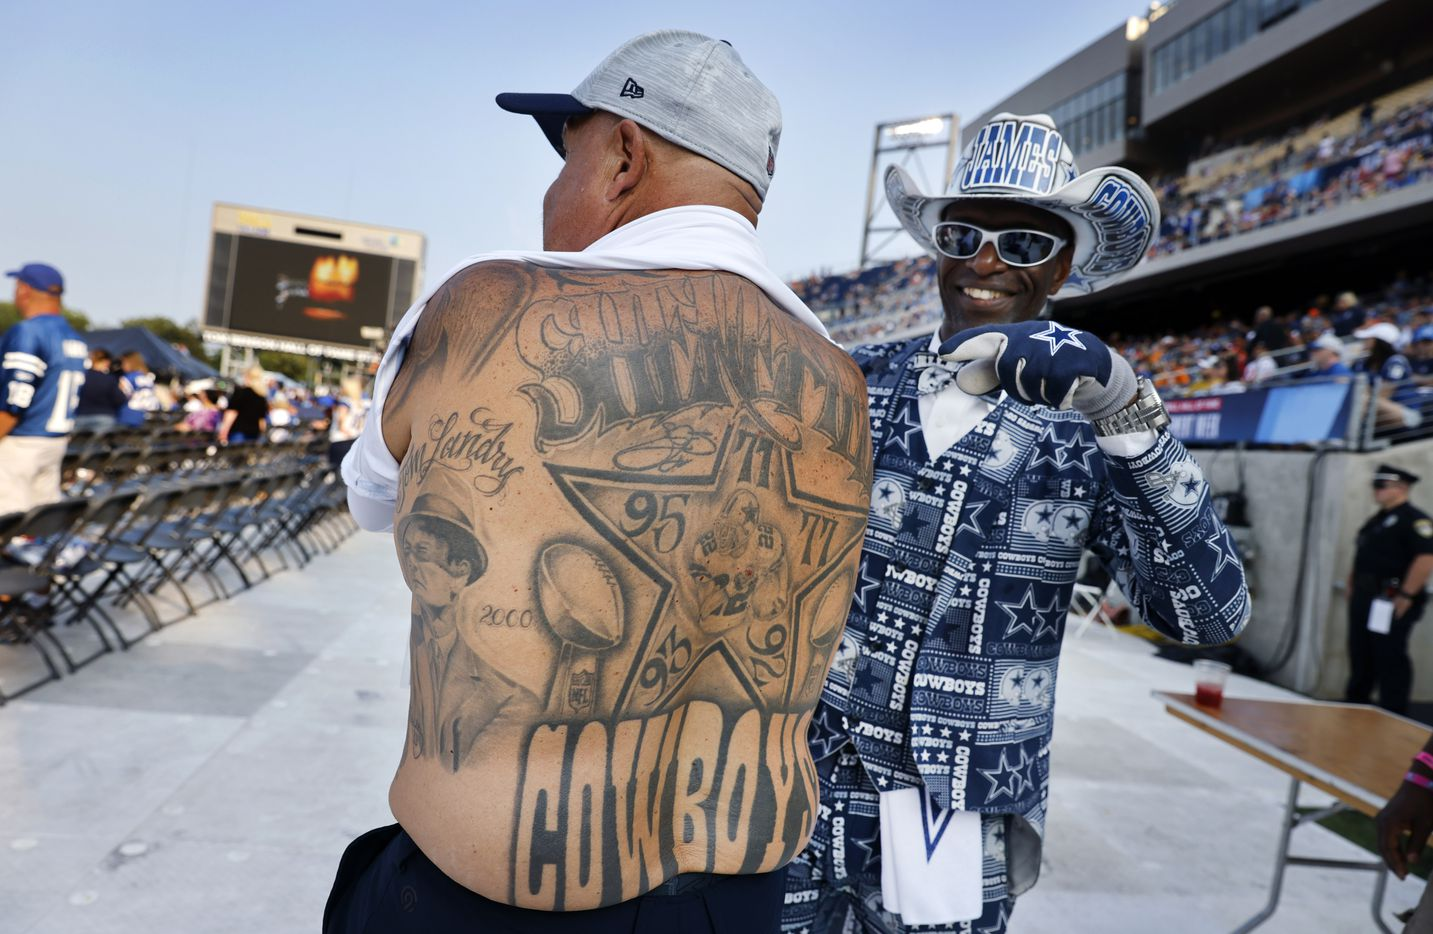 Mark Shenefild shows off his Dallas Cowboys themed tattoos covering his back as pointed out by James Wright of DeSoto before Pro Football Hall of Fame inductee Drew Pearson was introduced during the Class of 2021 enshrinement ceremony at Tom Benson Hall of Fame Stadium in Canton, Ohio, Sunday, August 8, 2021. (Tom Fox/The Dallas Morning News)